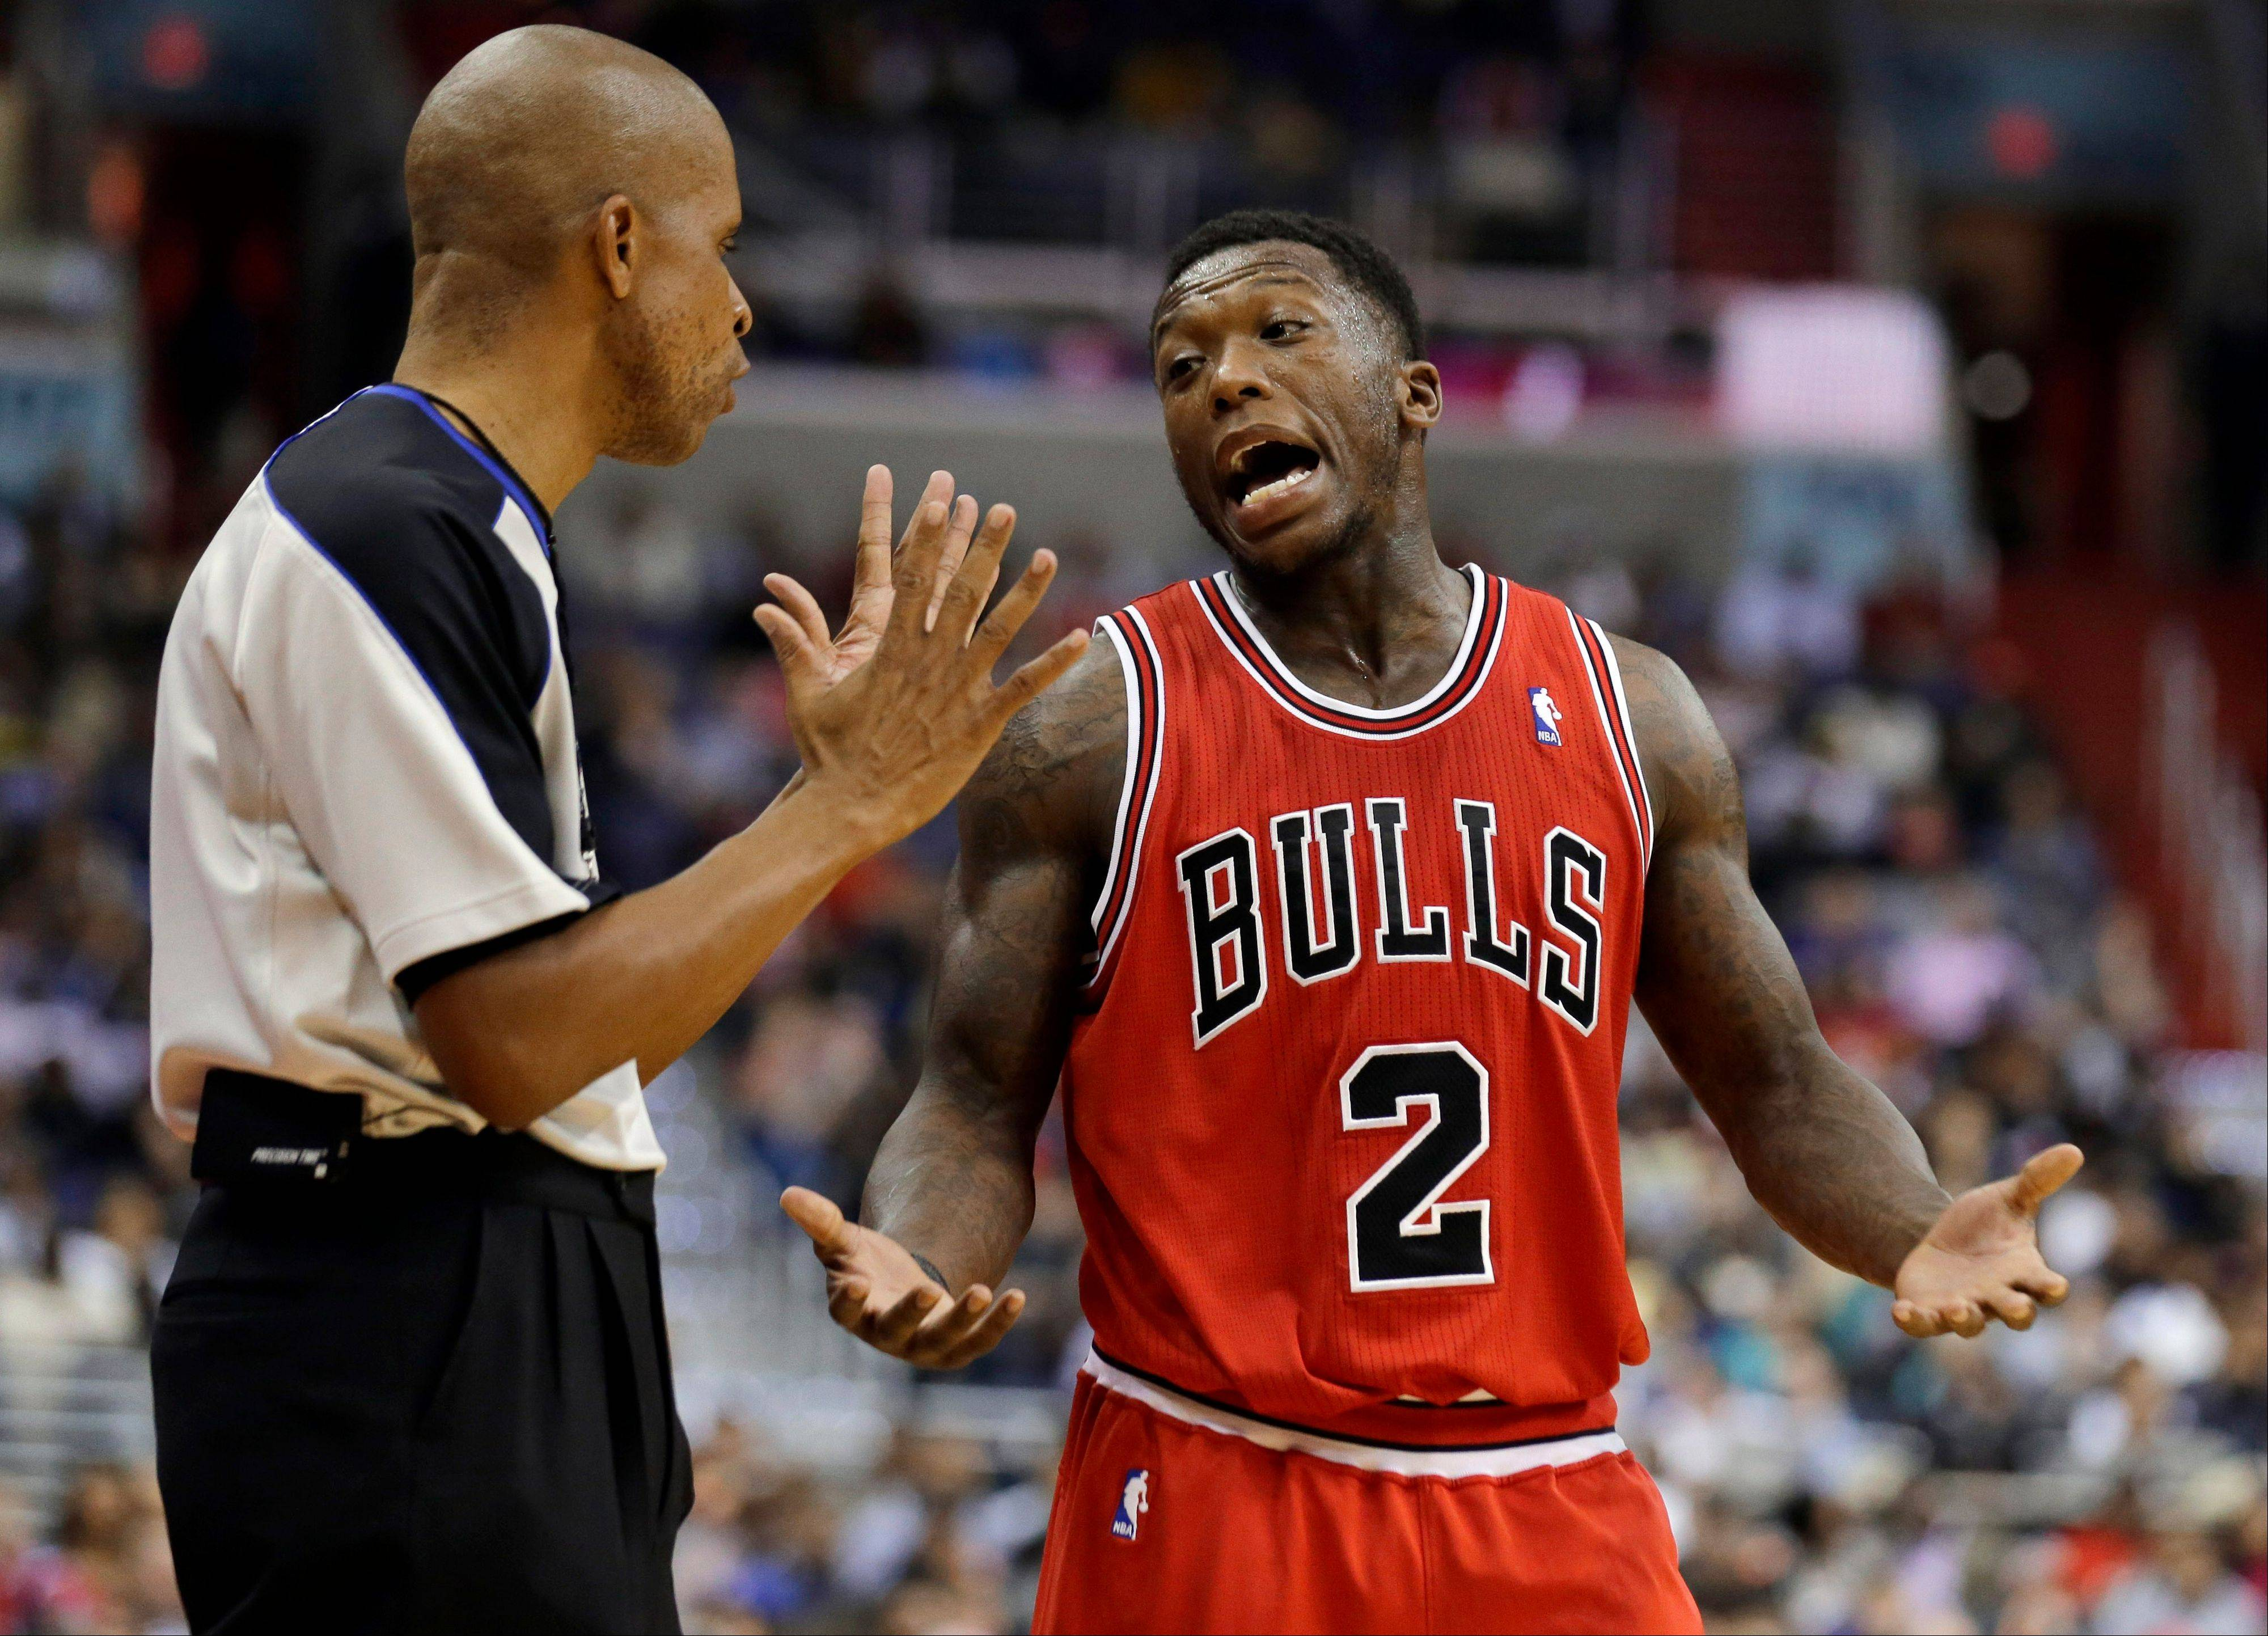 Referee Sean Corbin listens to Chicago Bulls guard Nate Robinson (2) in the second half of the Bulls' NBA basketball game against the Washington Wizards on Tuesday, April 2, 2013, in Washington. The Wizards won 90-86.